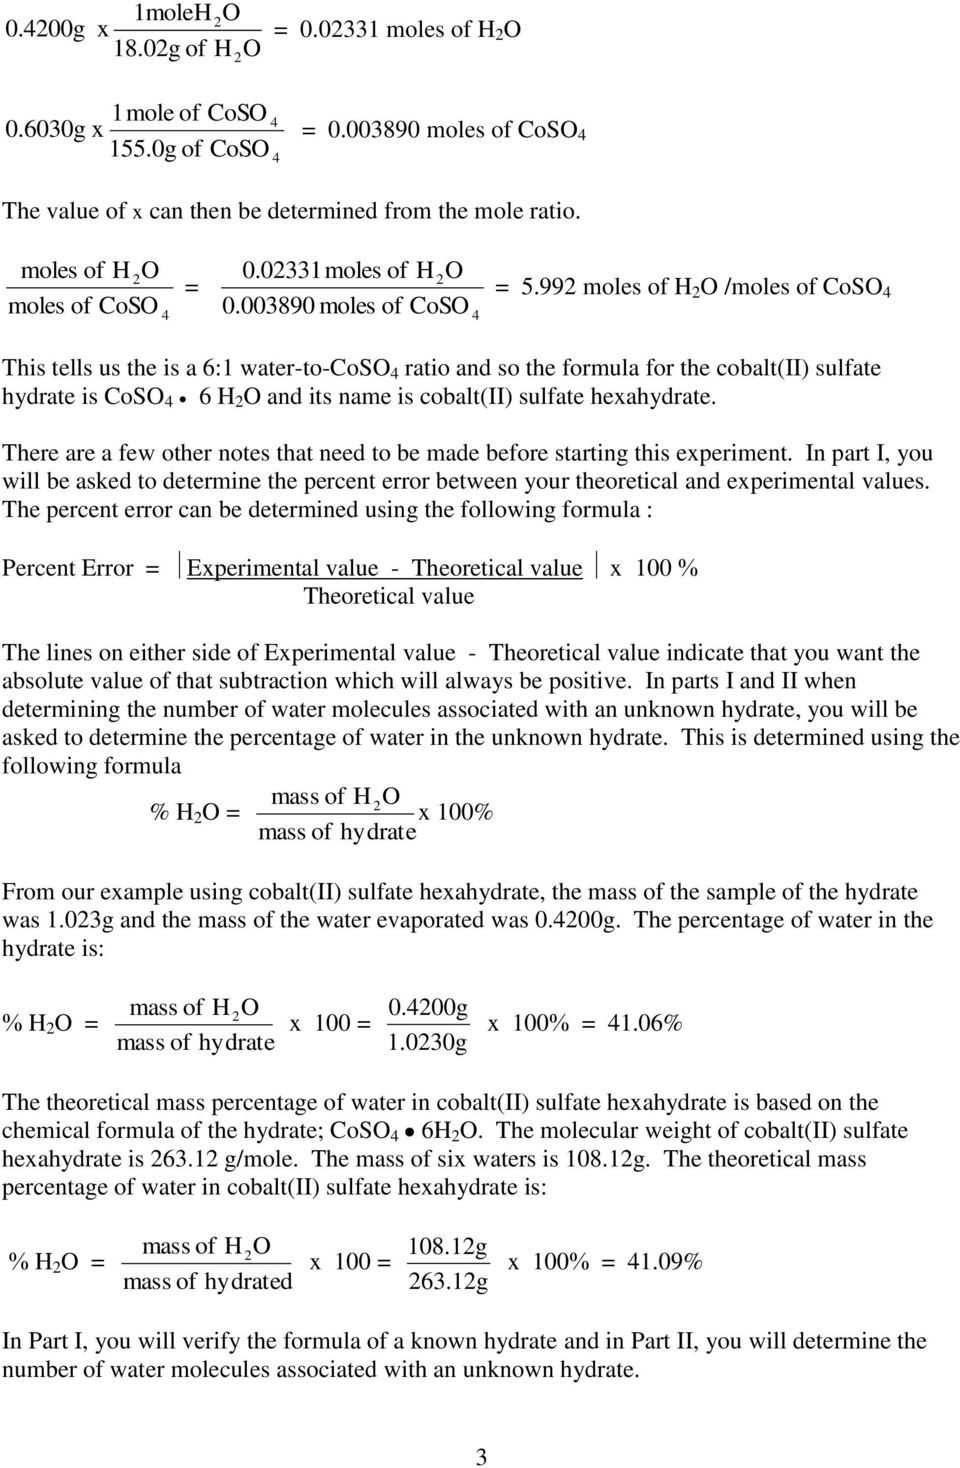 Percent Error Worksheet Answer Key Properties Of Hydrates Prelab 3 Give the Chemical formula